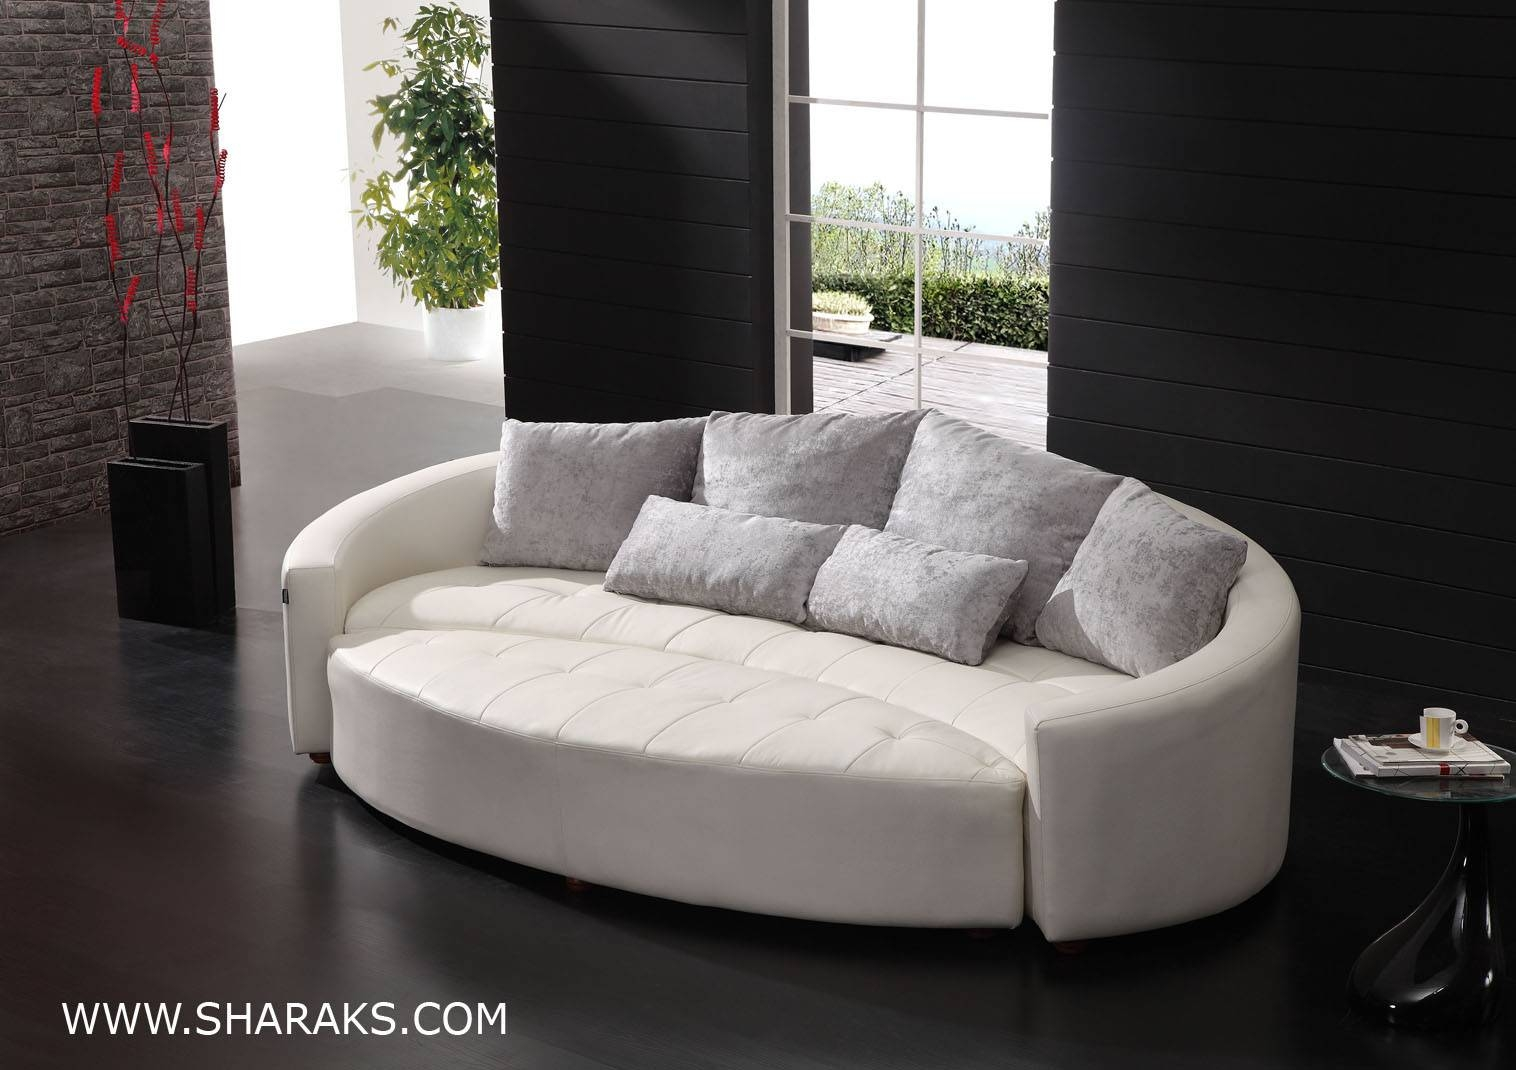 Sofas Center : Inexpensive Sectional Sofas For Small Spaces Best with regard to Inexpensive Sectional Sofas for Small Spaces (Image 27 of 30)